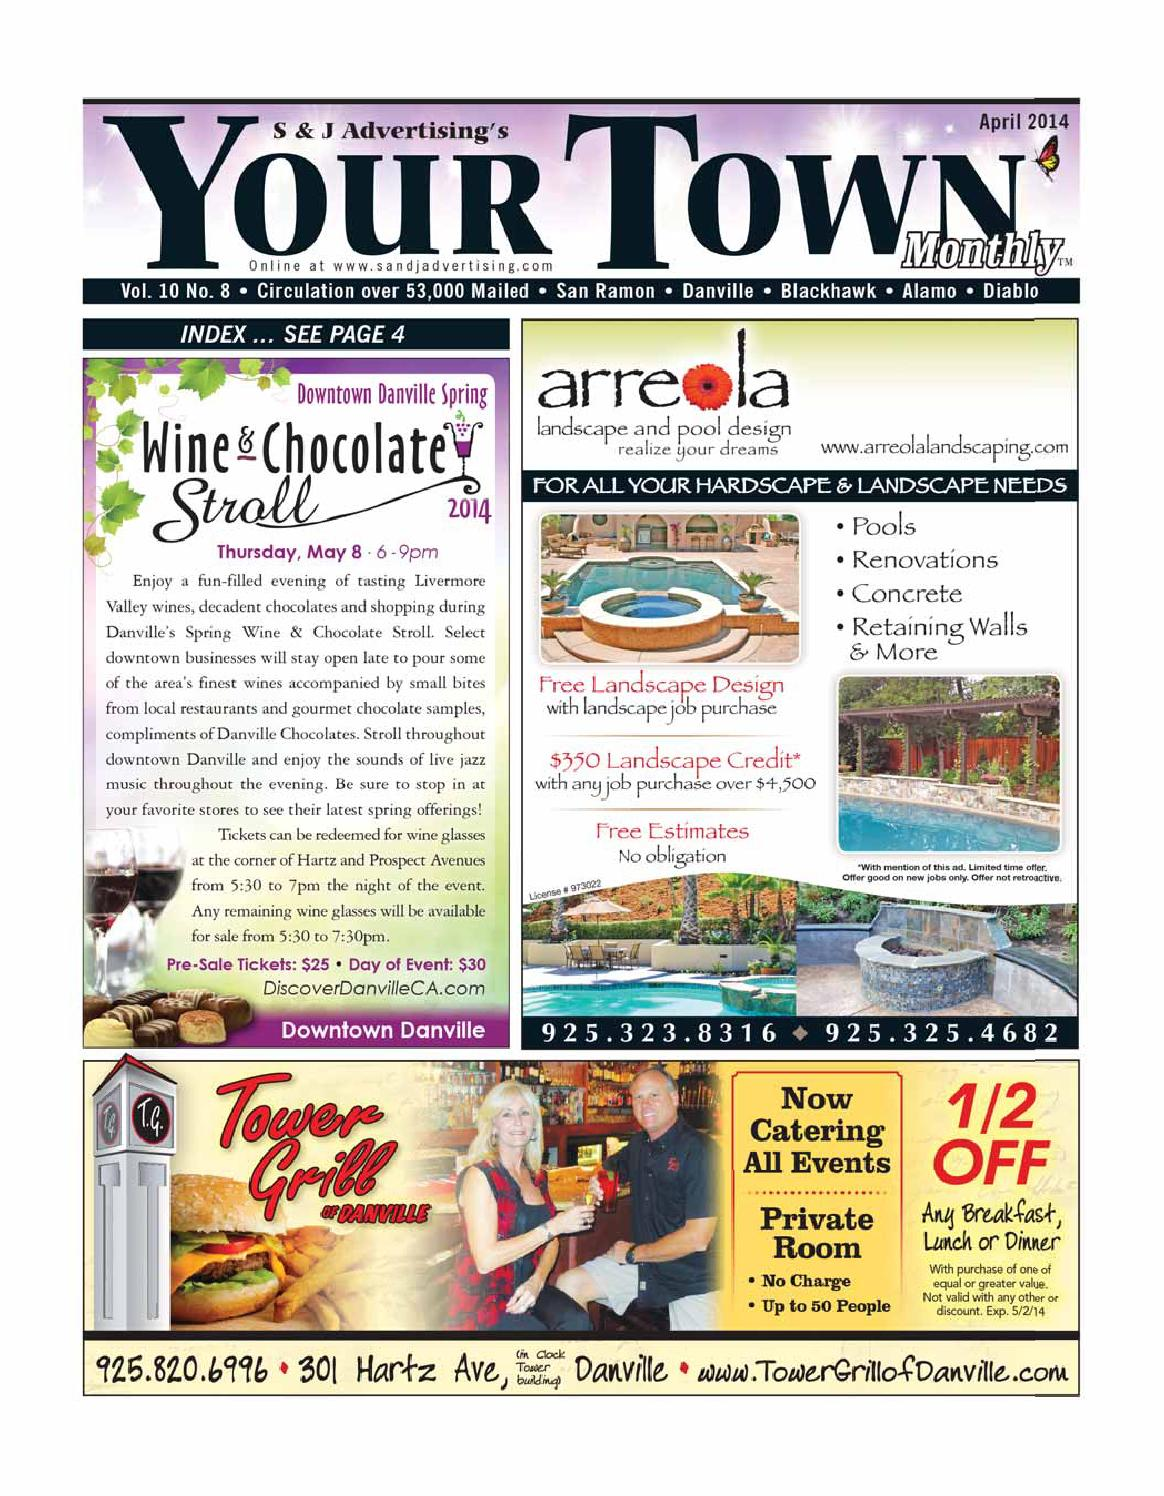 san ramon danville april 2014 by your town monthly issuu